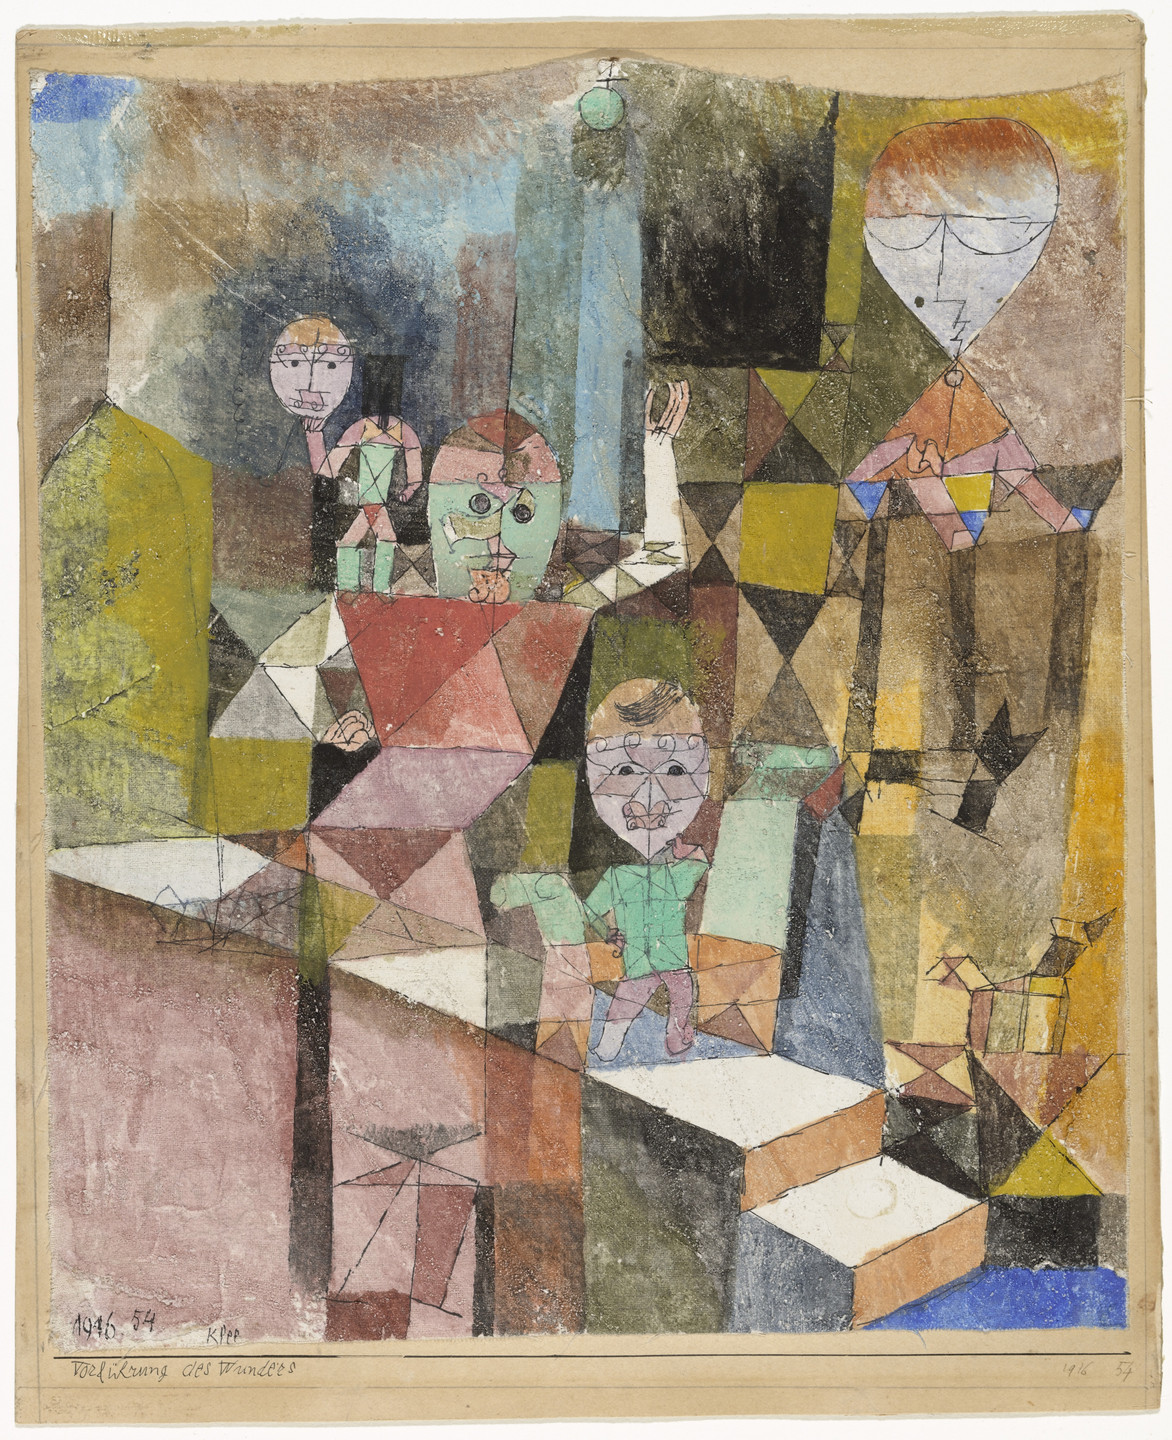 Paul Klee. Introducing the Miracle. 1916